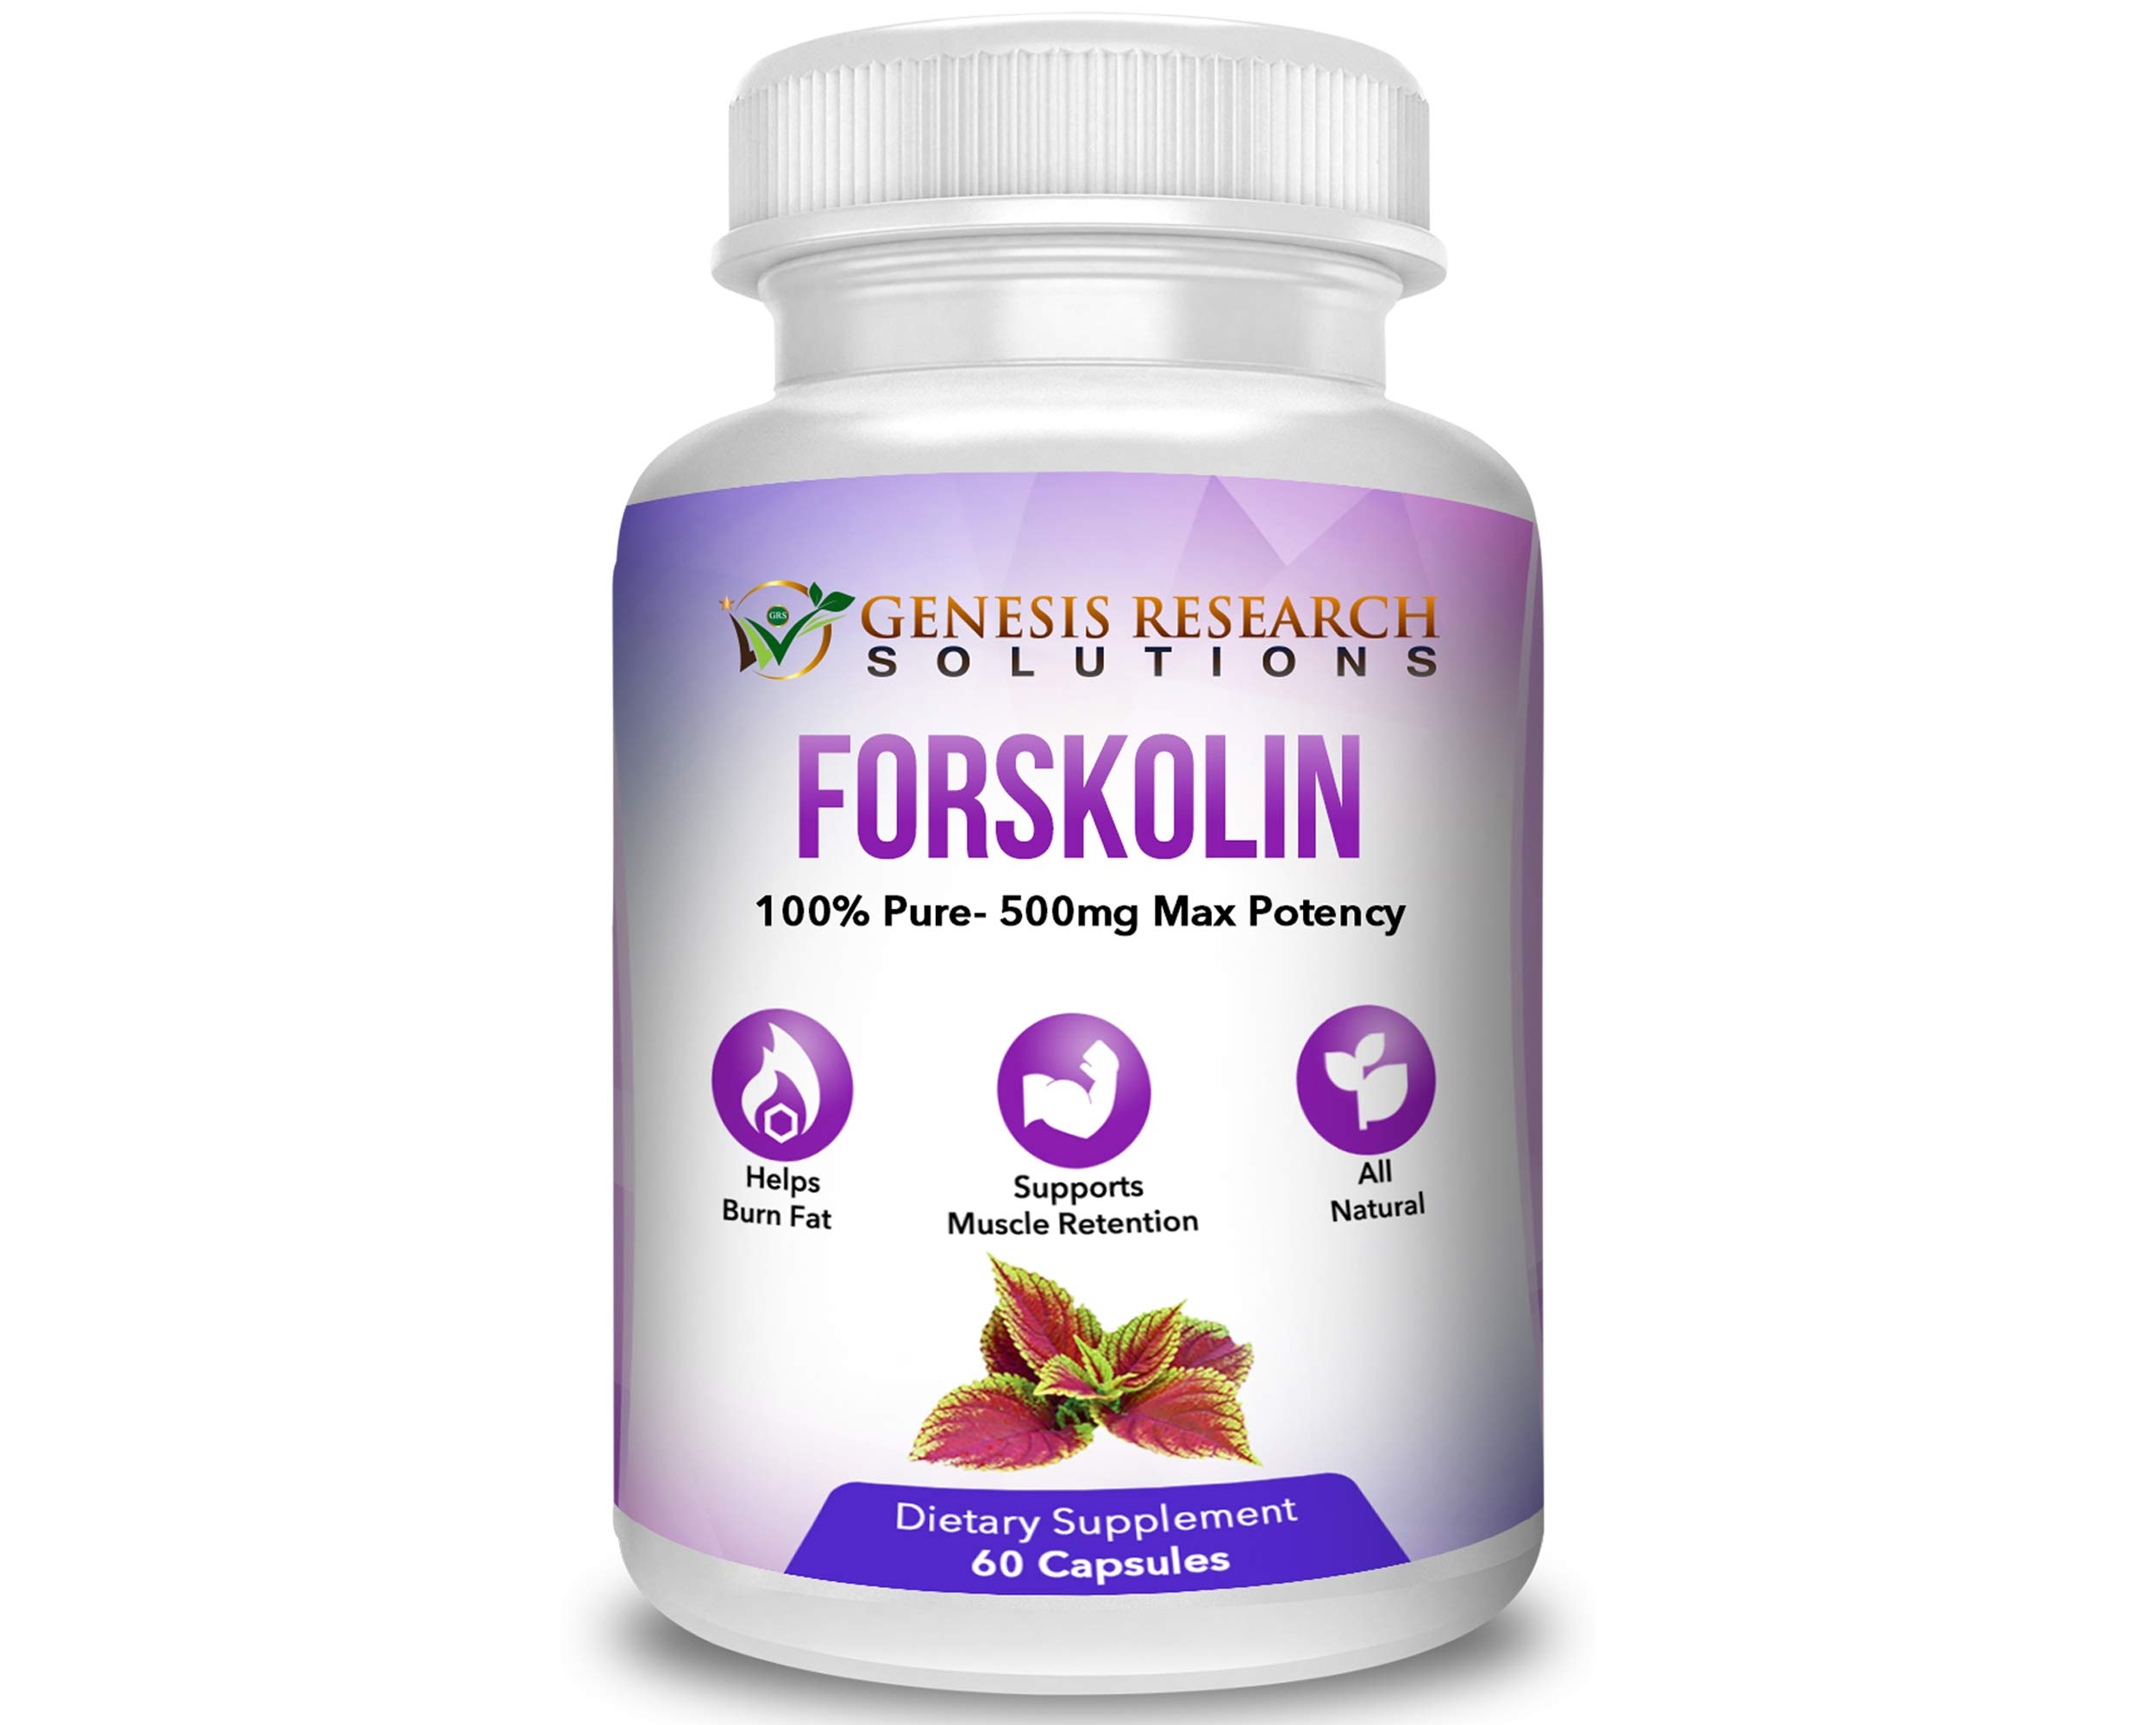 Pure Forskolin Dietary Supplement, Appetite Suppressant for Weight Loss & Muscle Retention. Plus Metabolism & Energy Booster - 100% Natural Supplement Extr